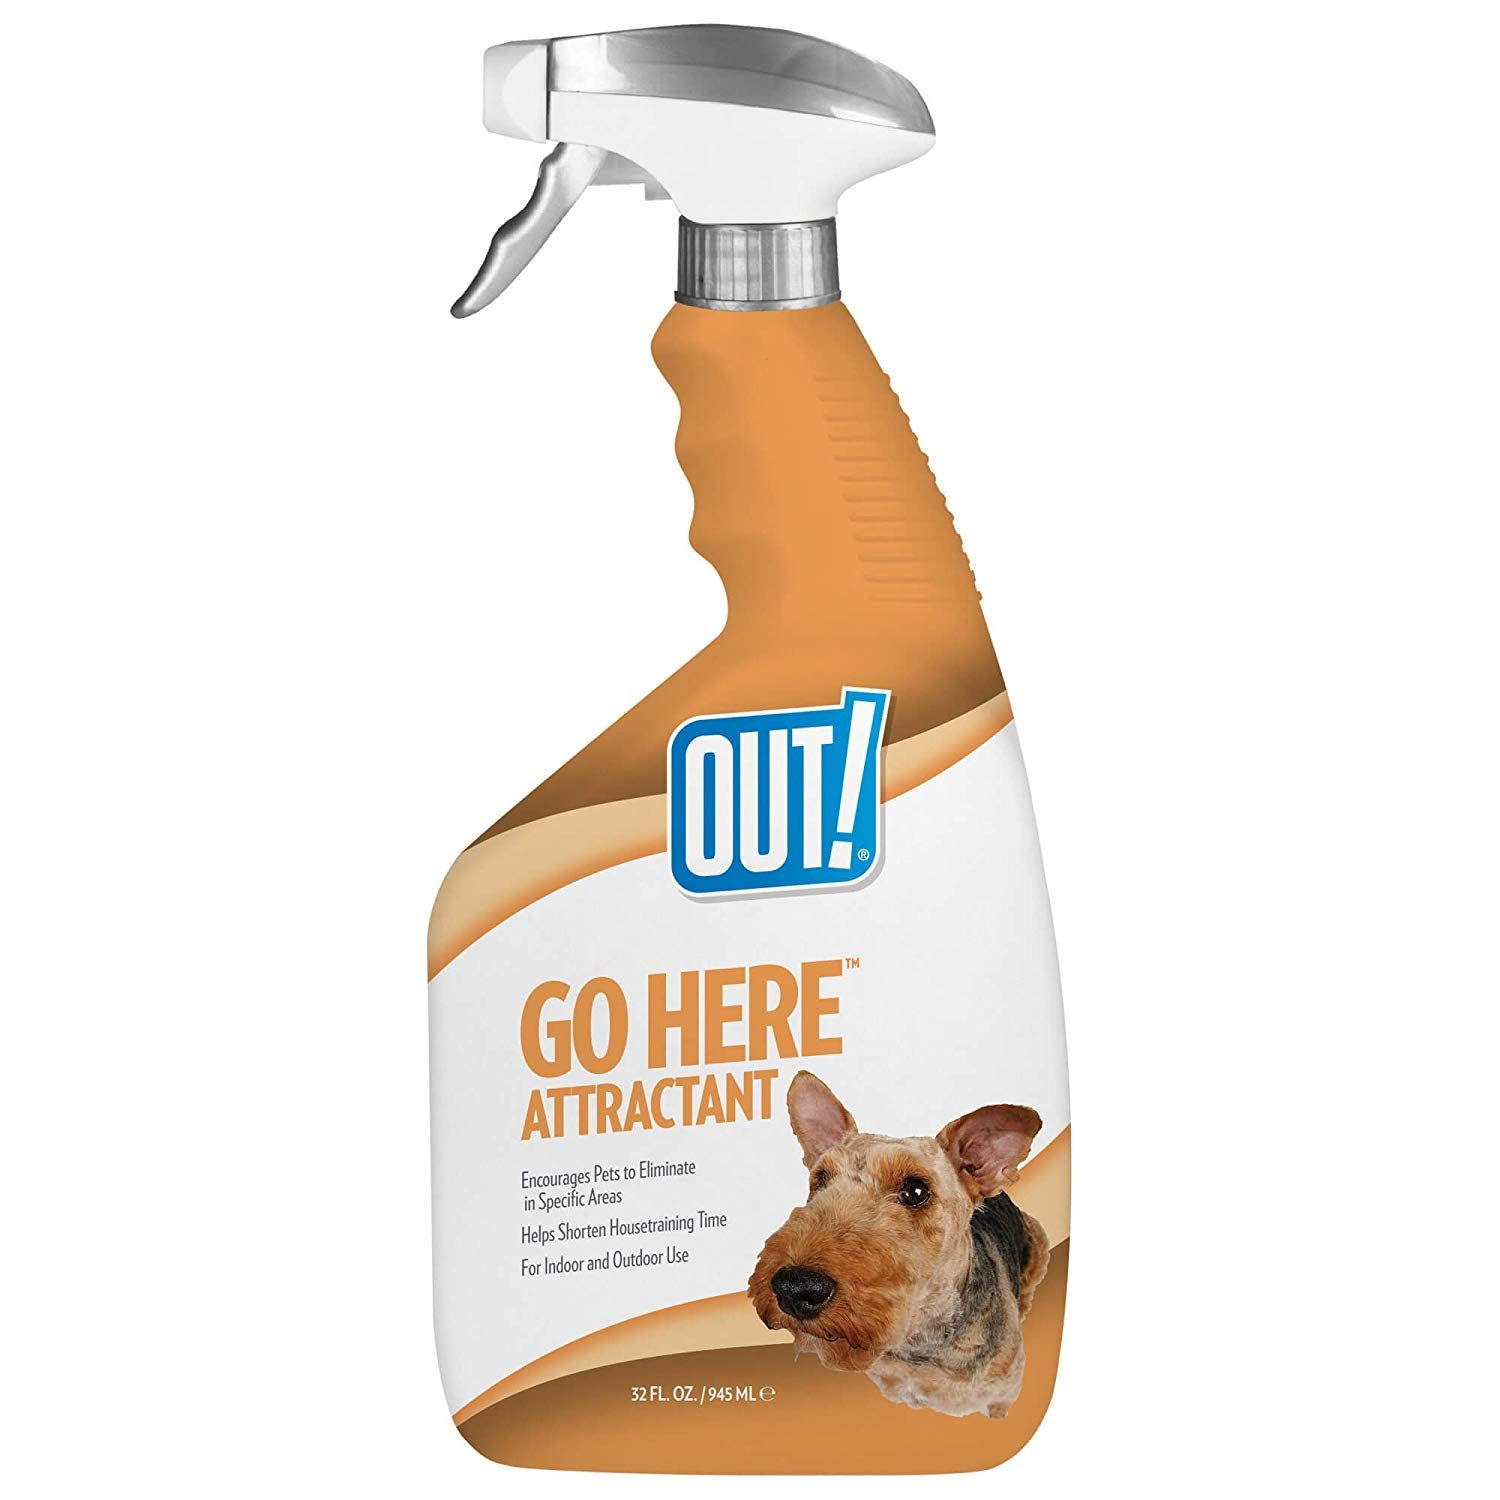 Out Go Here Attractant Indoor And Outdoor Dog Training Spray 32 Oz Thanks A Lot For Having Viewed Our Photograp Dog Training Dog Spray Dog Potty Training